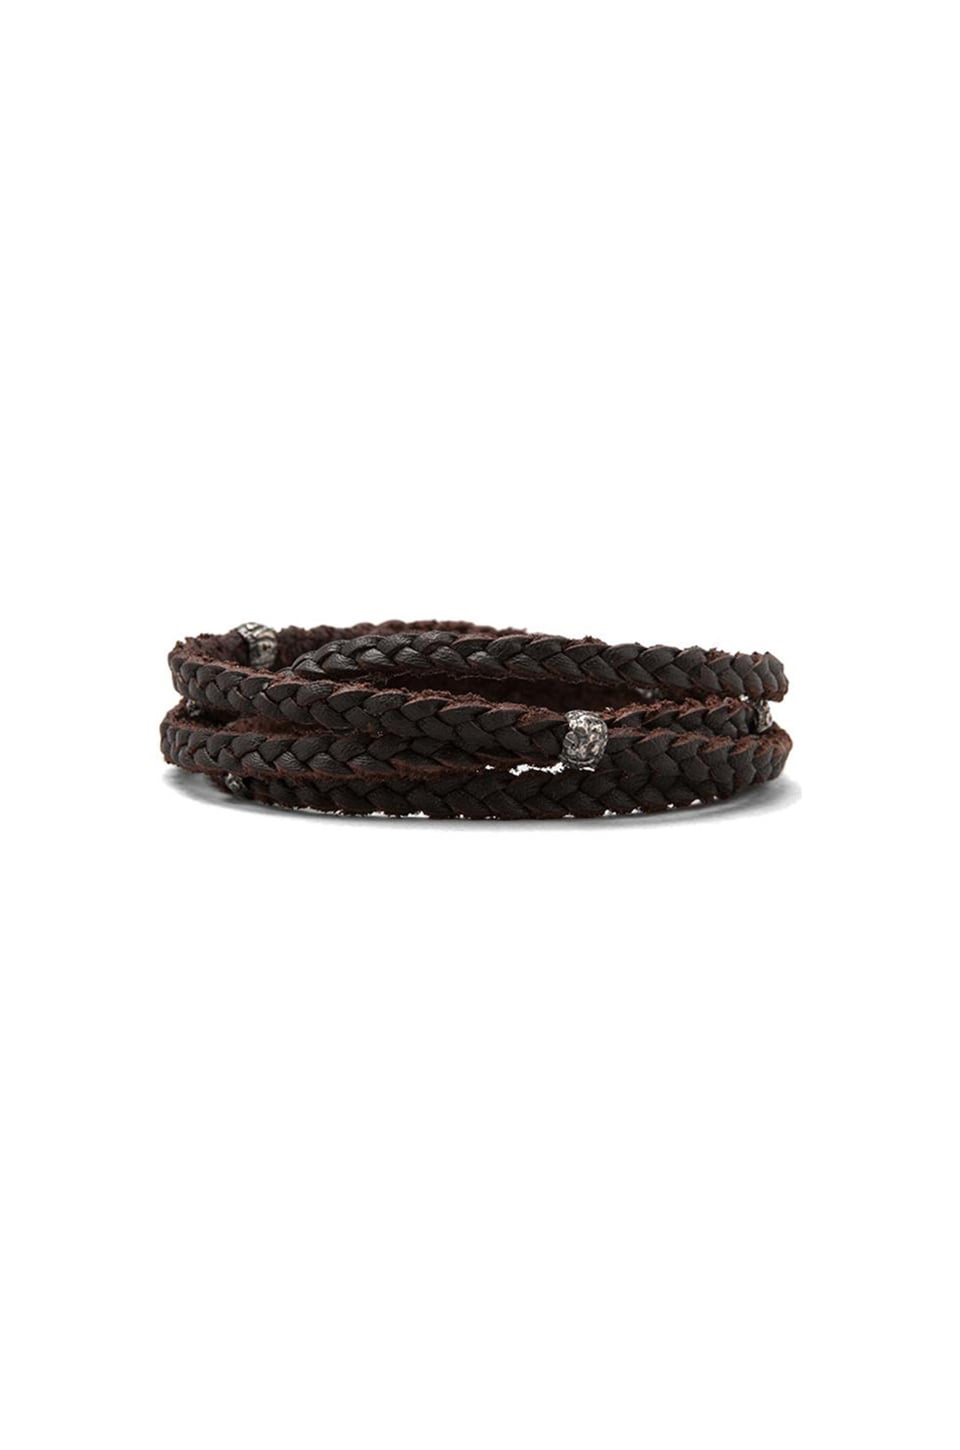 M.Cohen Braided Leather Wrap Bracelet in Brown